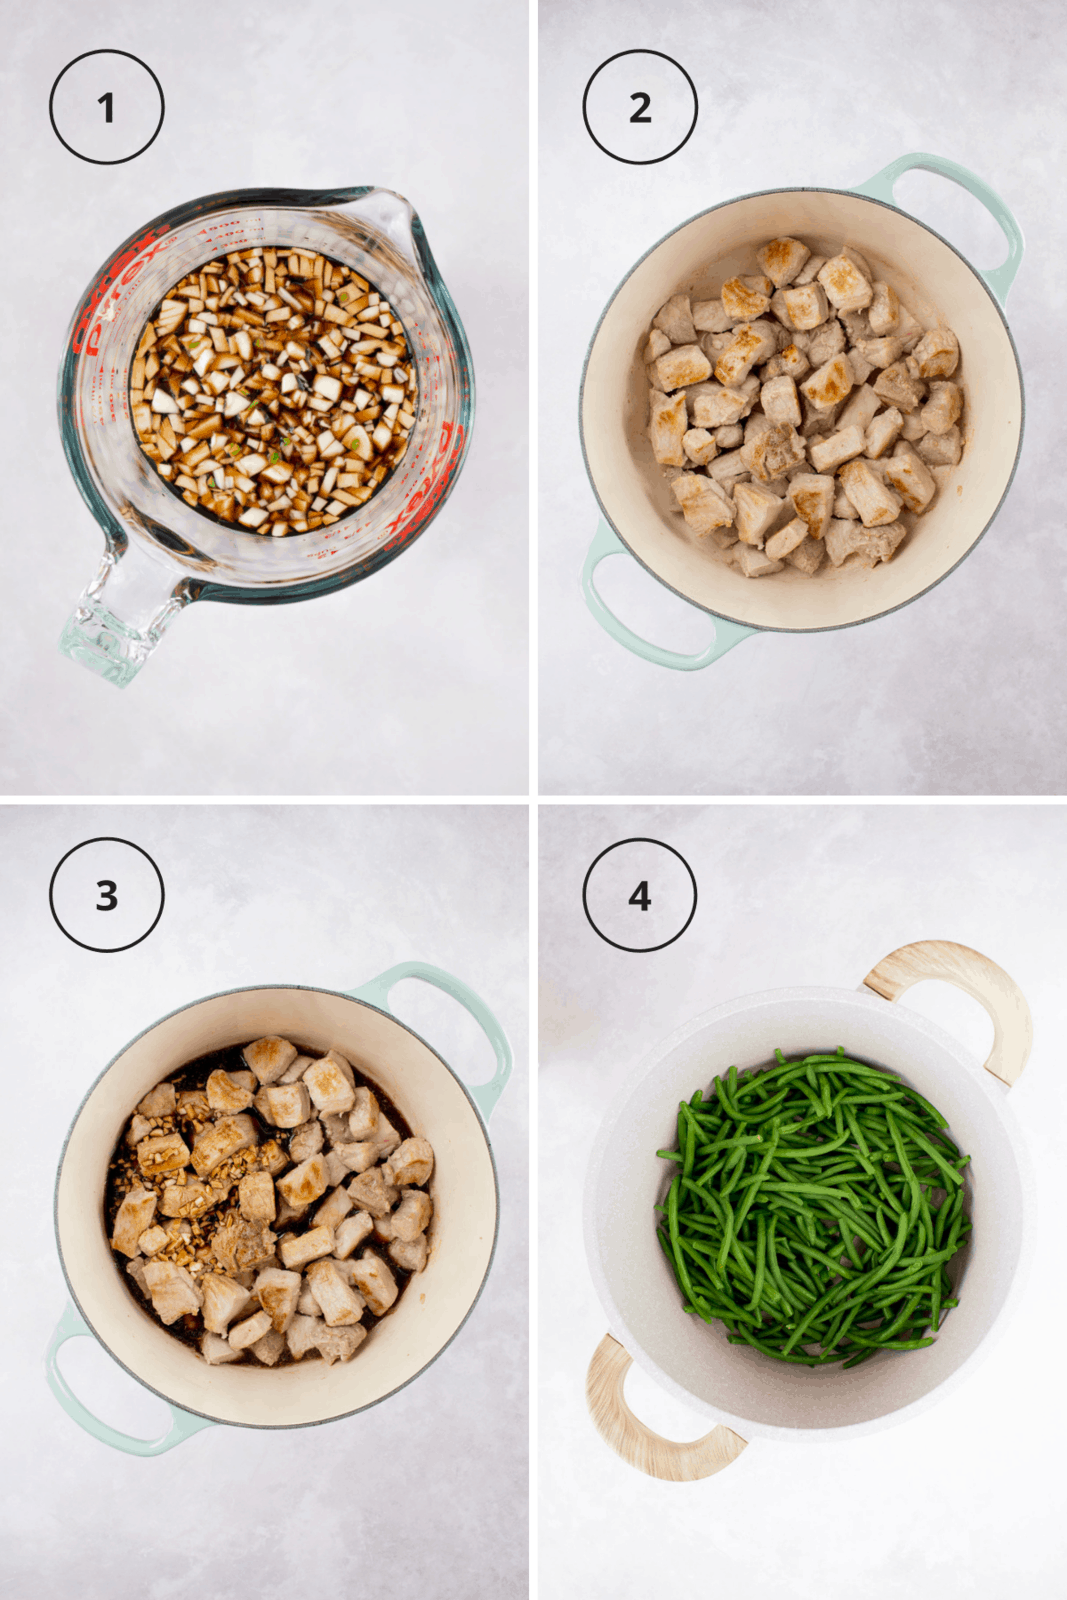 Process shot for making pork and green beans.